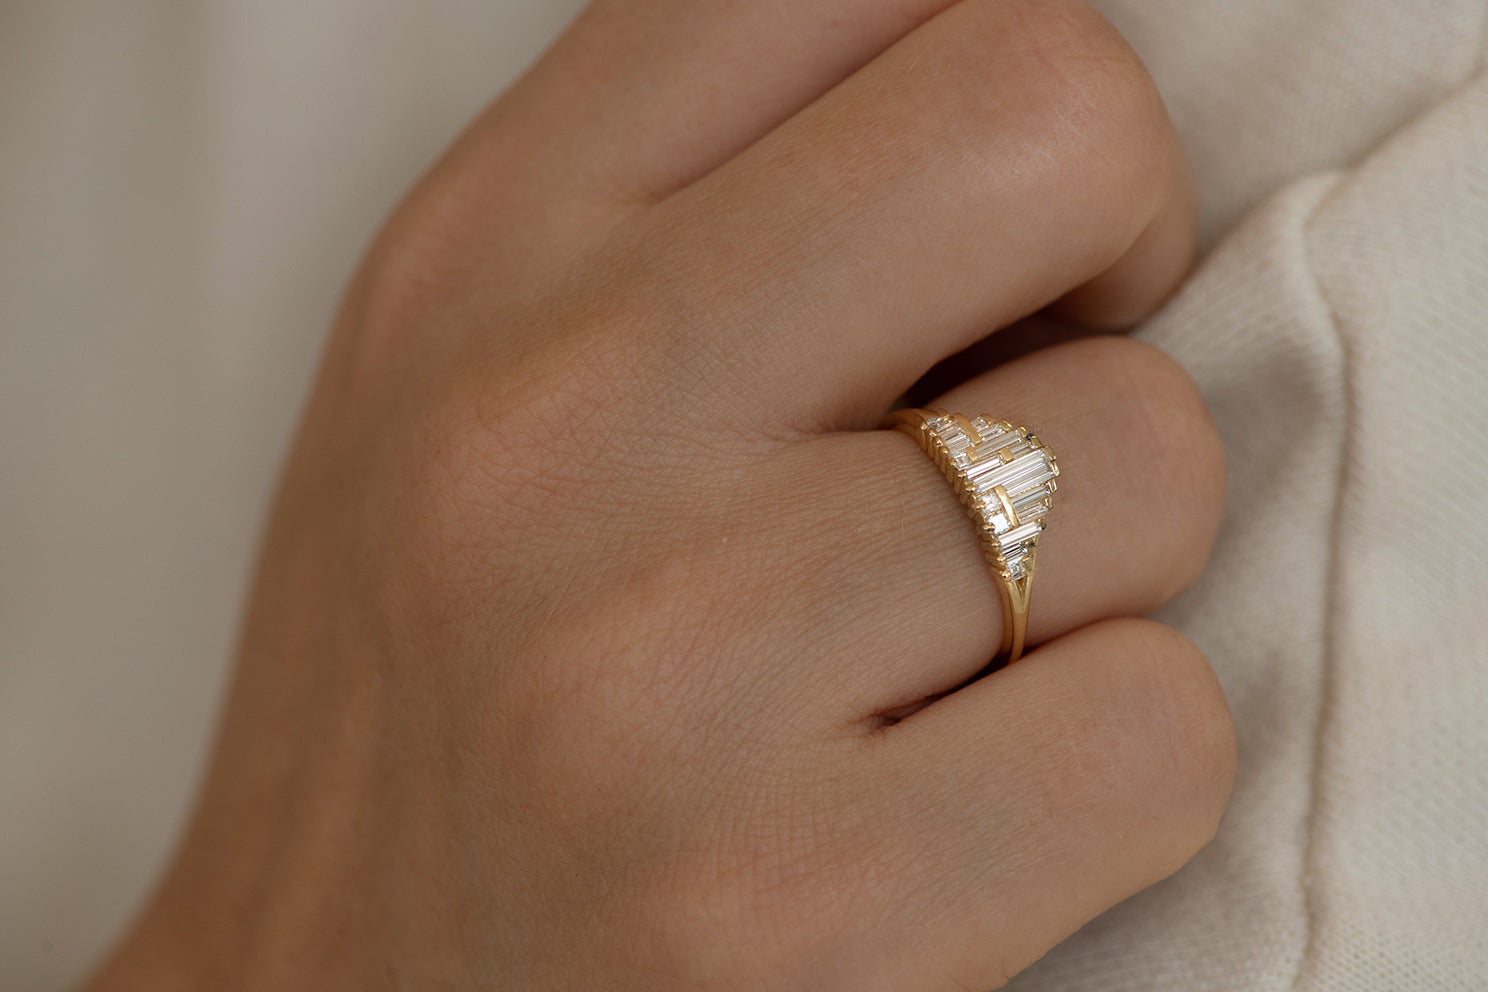 Art Deco Style Engagement Ring on Hand Up Close in Sun